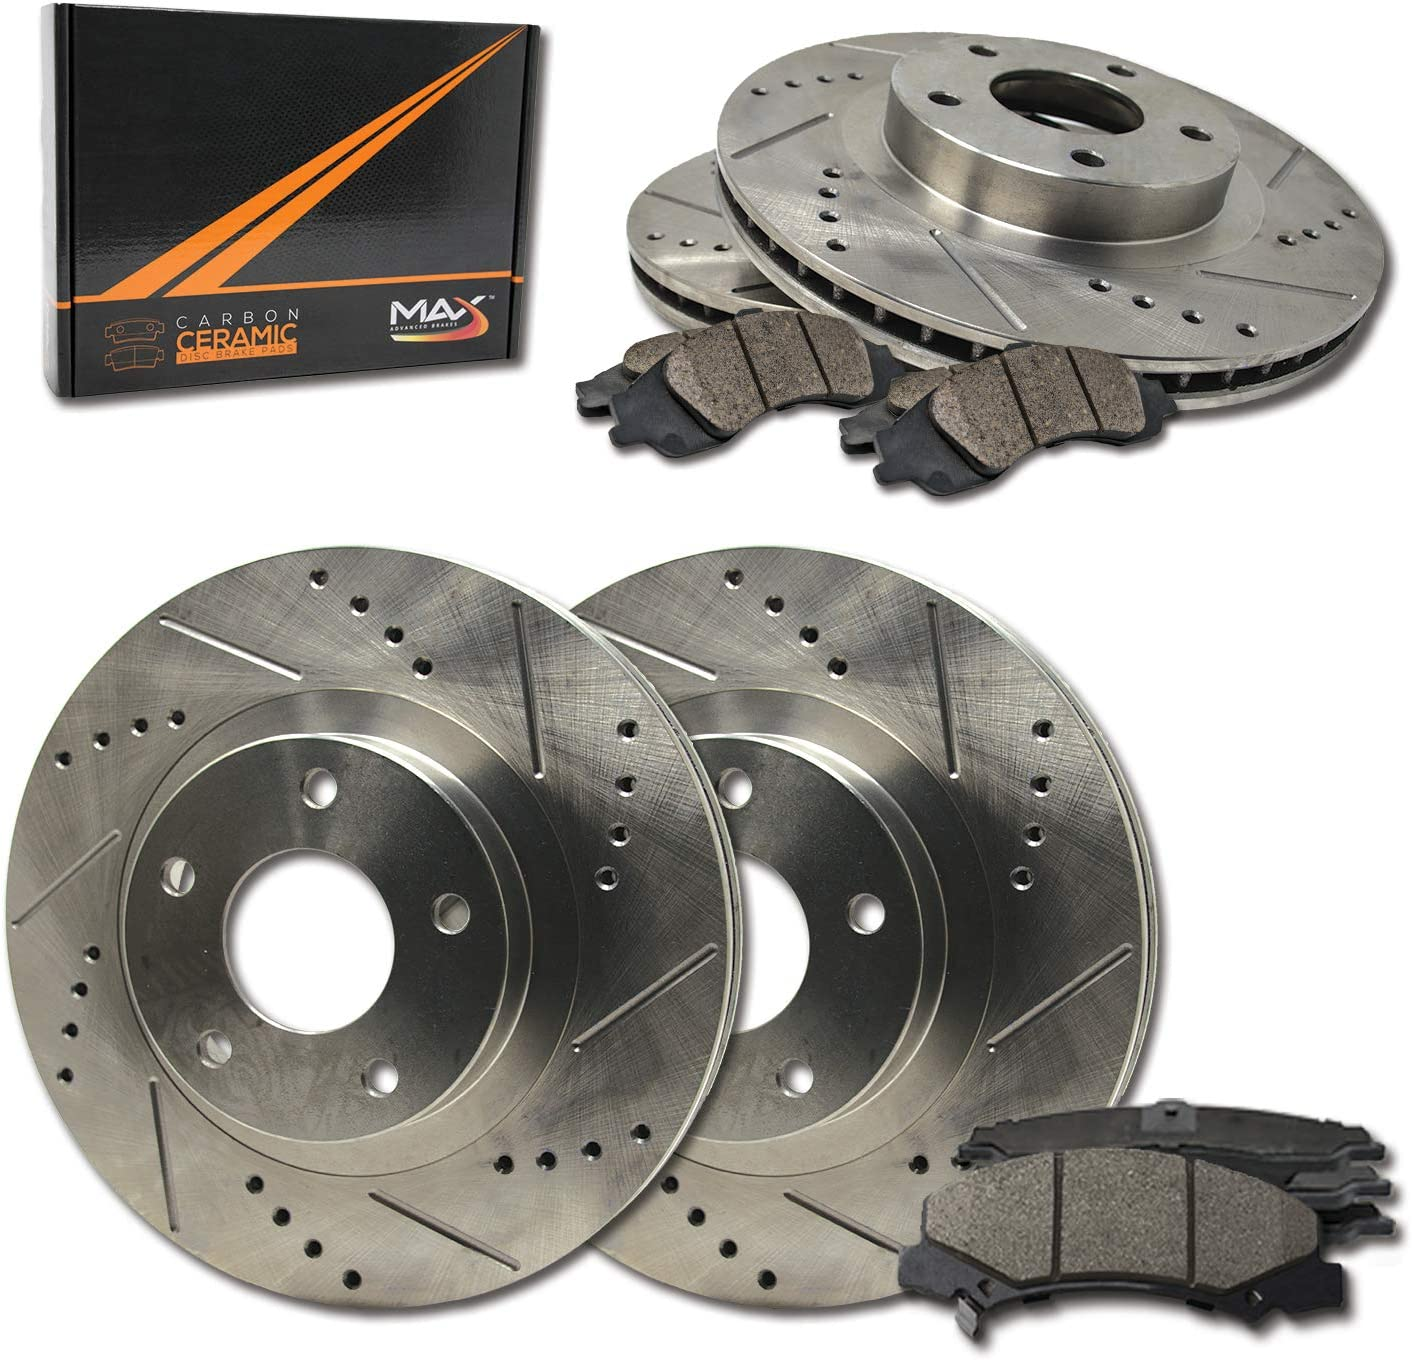 Front + Rear Max Brakes Free shipping anywhere in the nation Finally popular brand Premium Ceramic Carbon with XDS Rotors